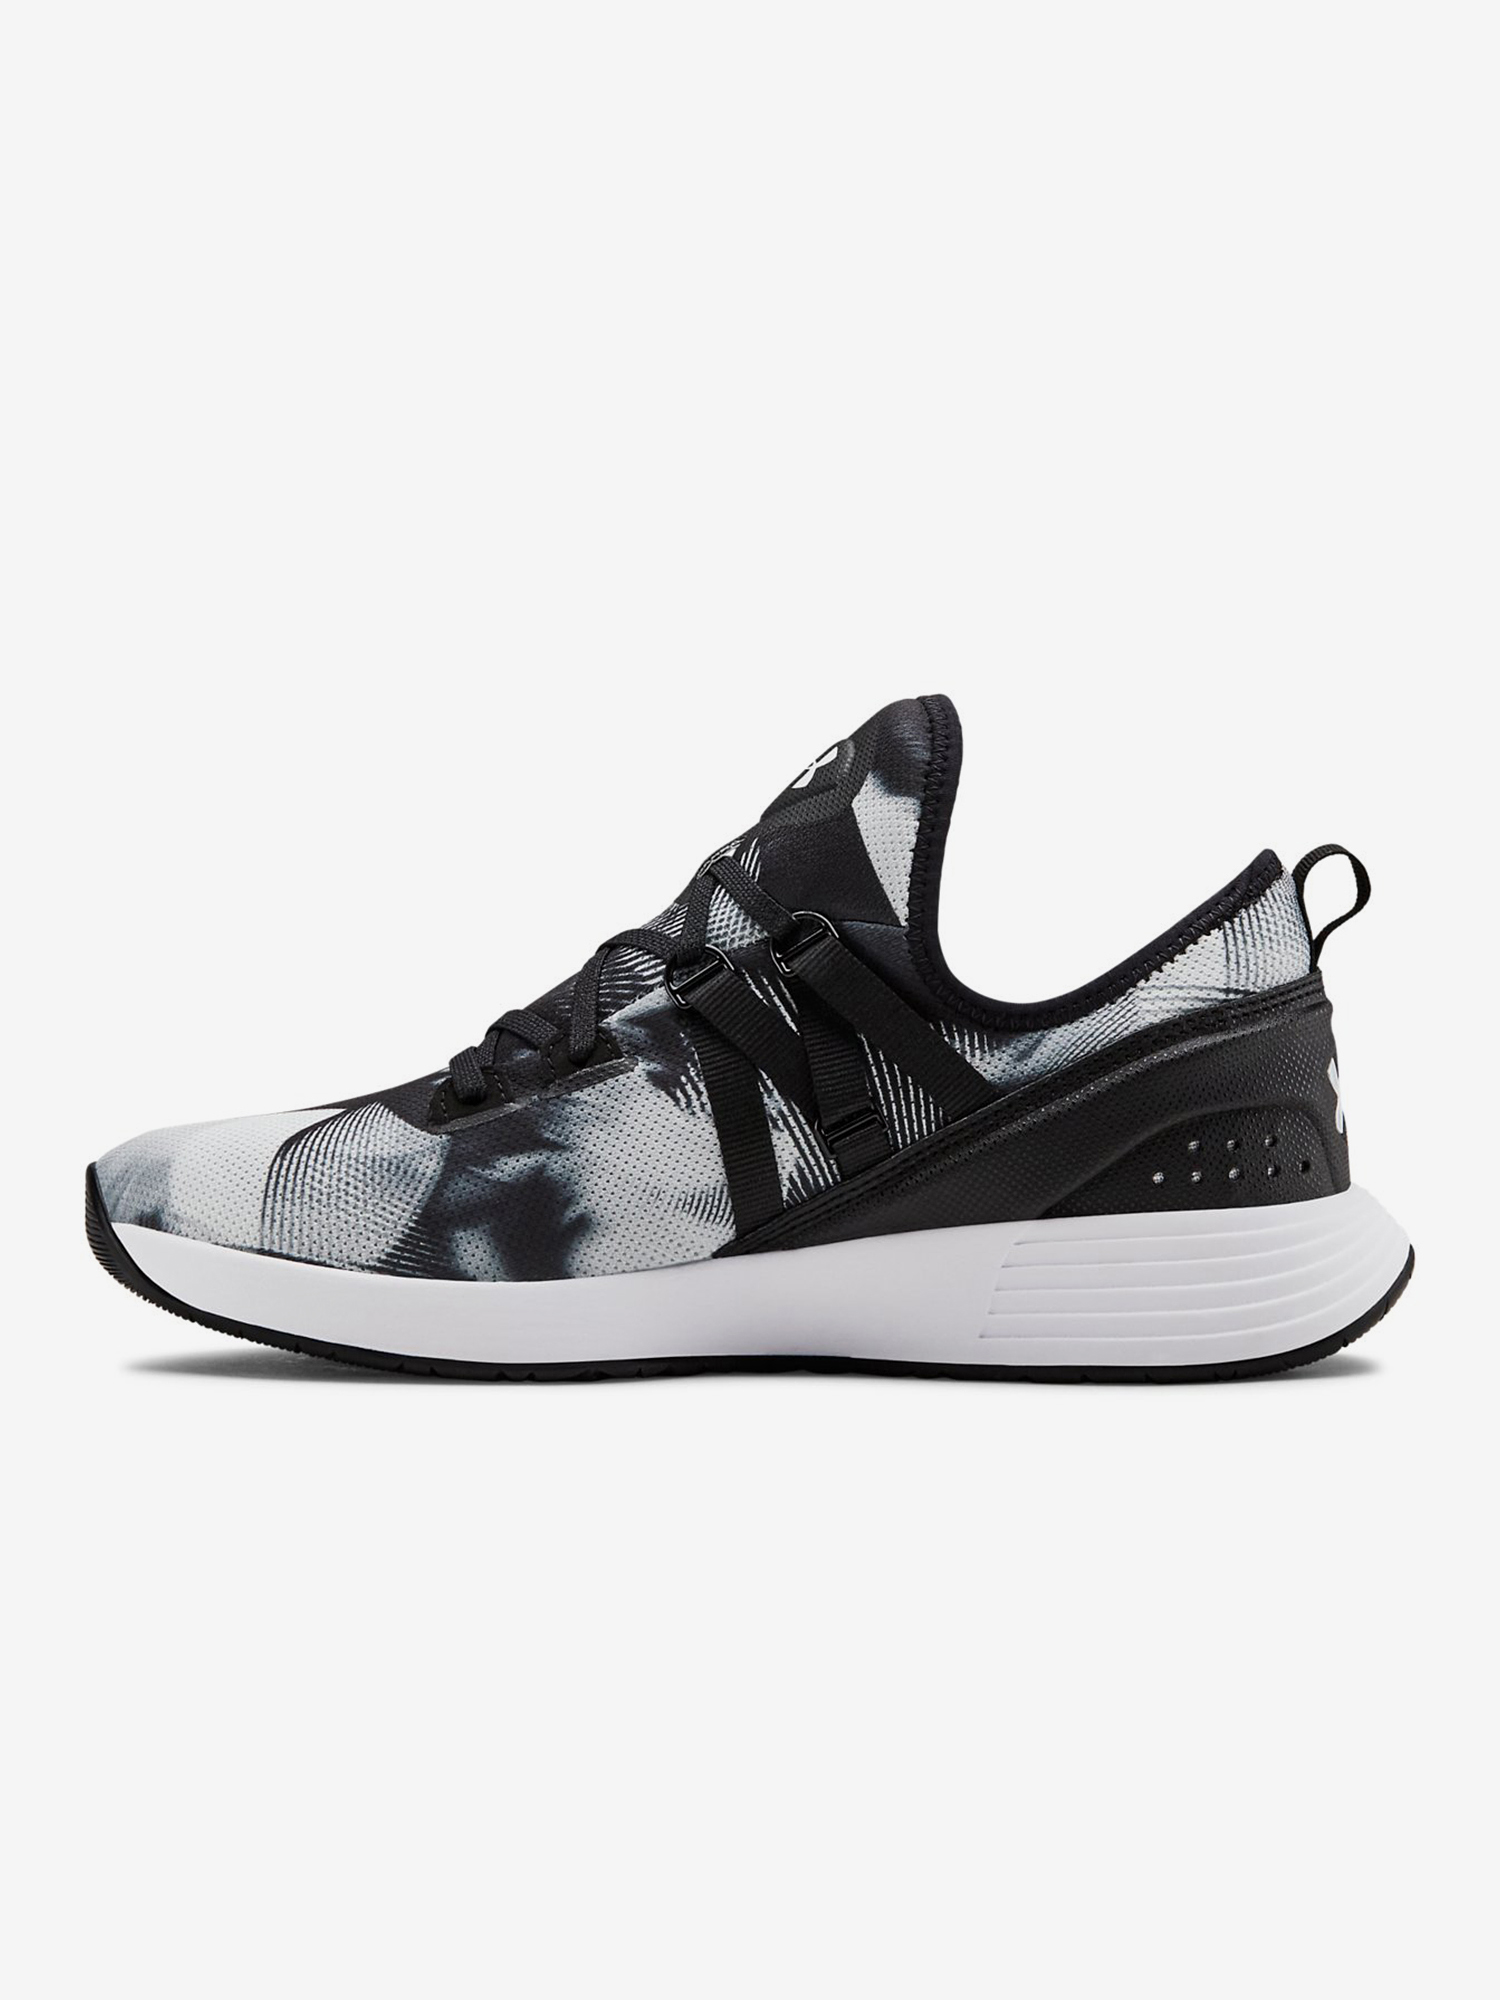 Boty Under Armour W Breathe Trainer Prnt-Blk (2)